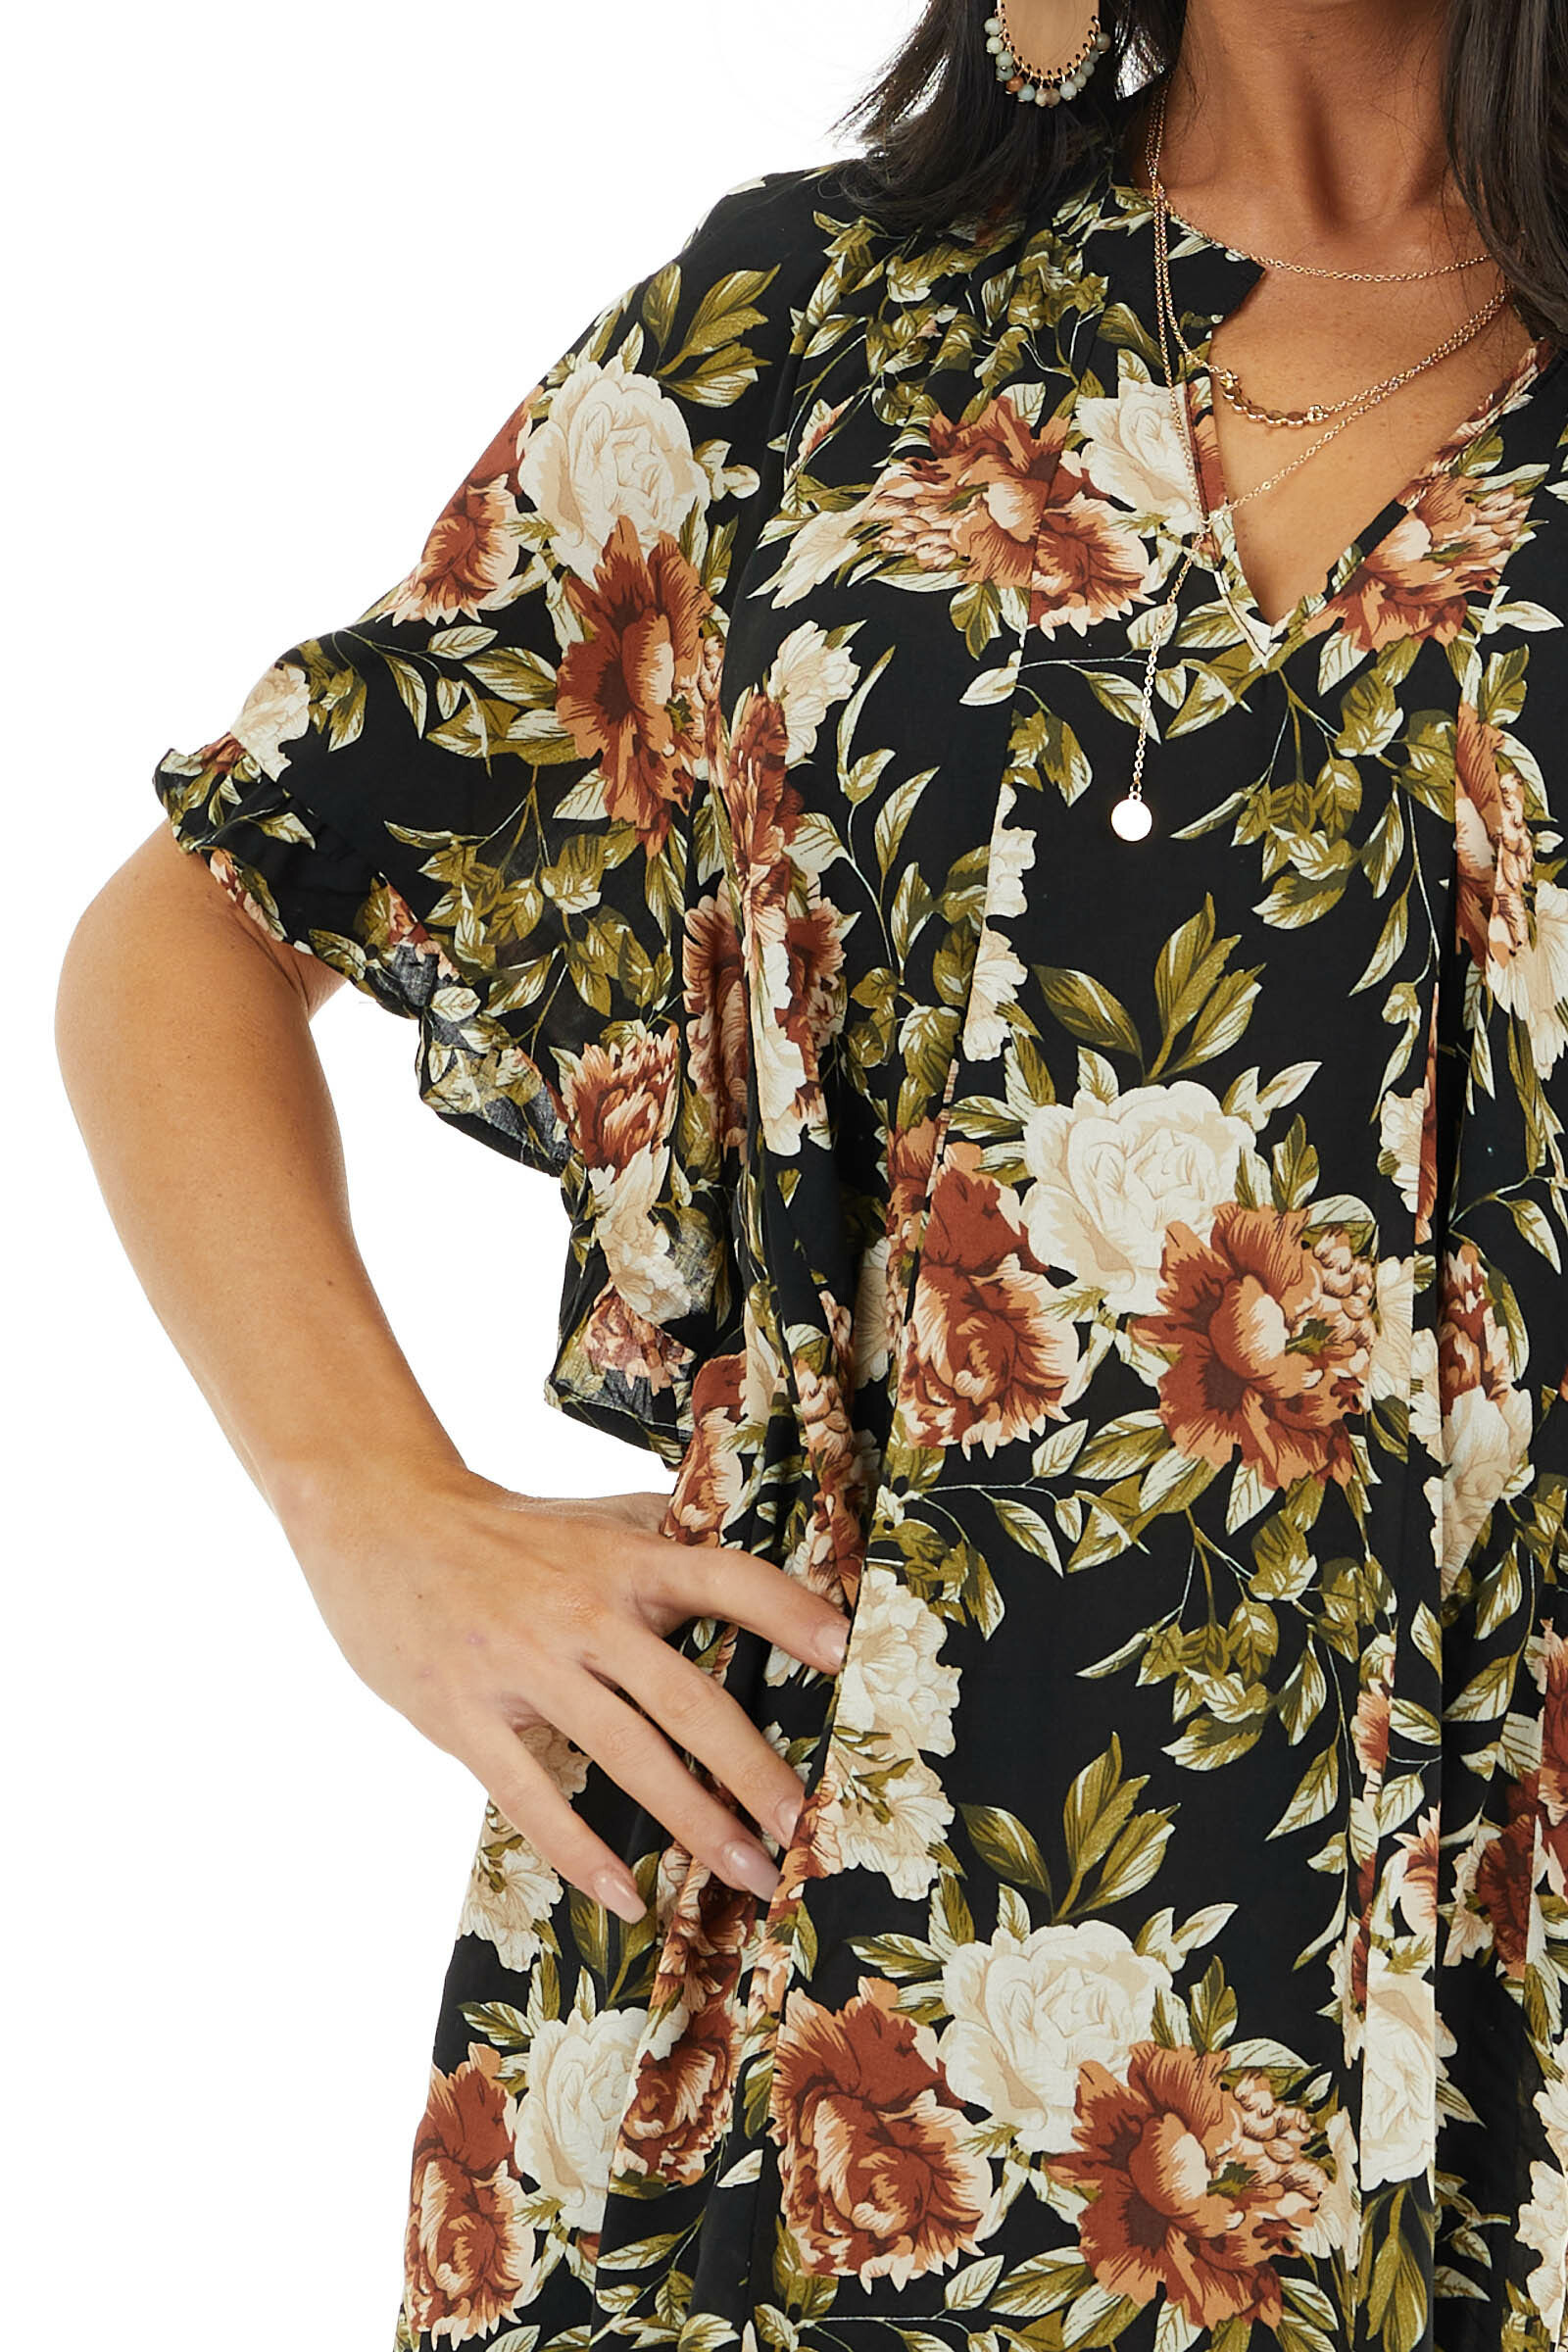 Black Floral Print Tunic Top with Short Ruffle Sleeves